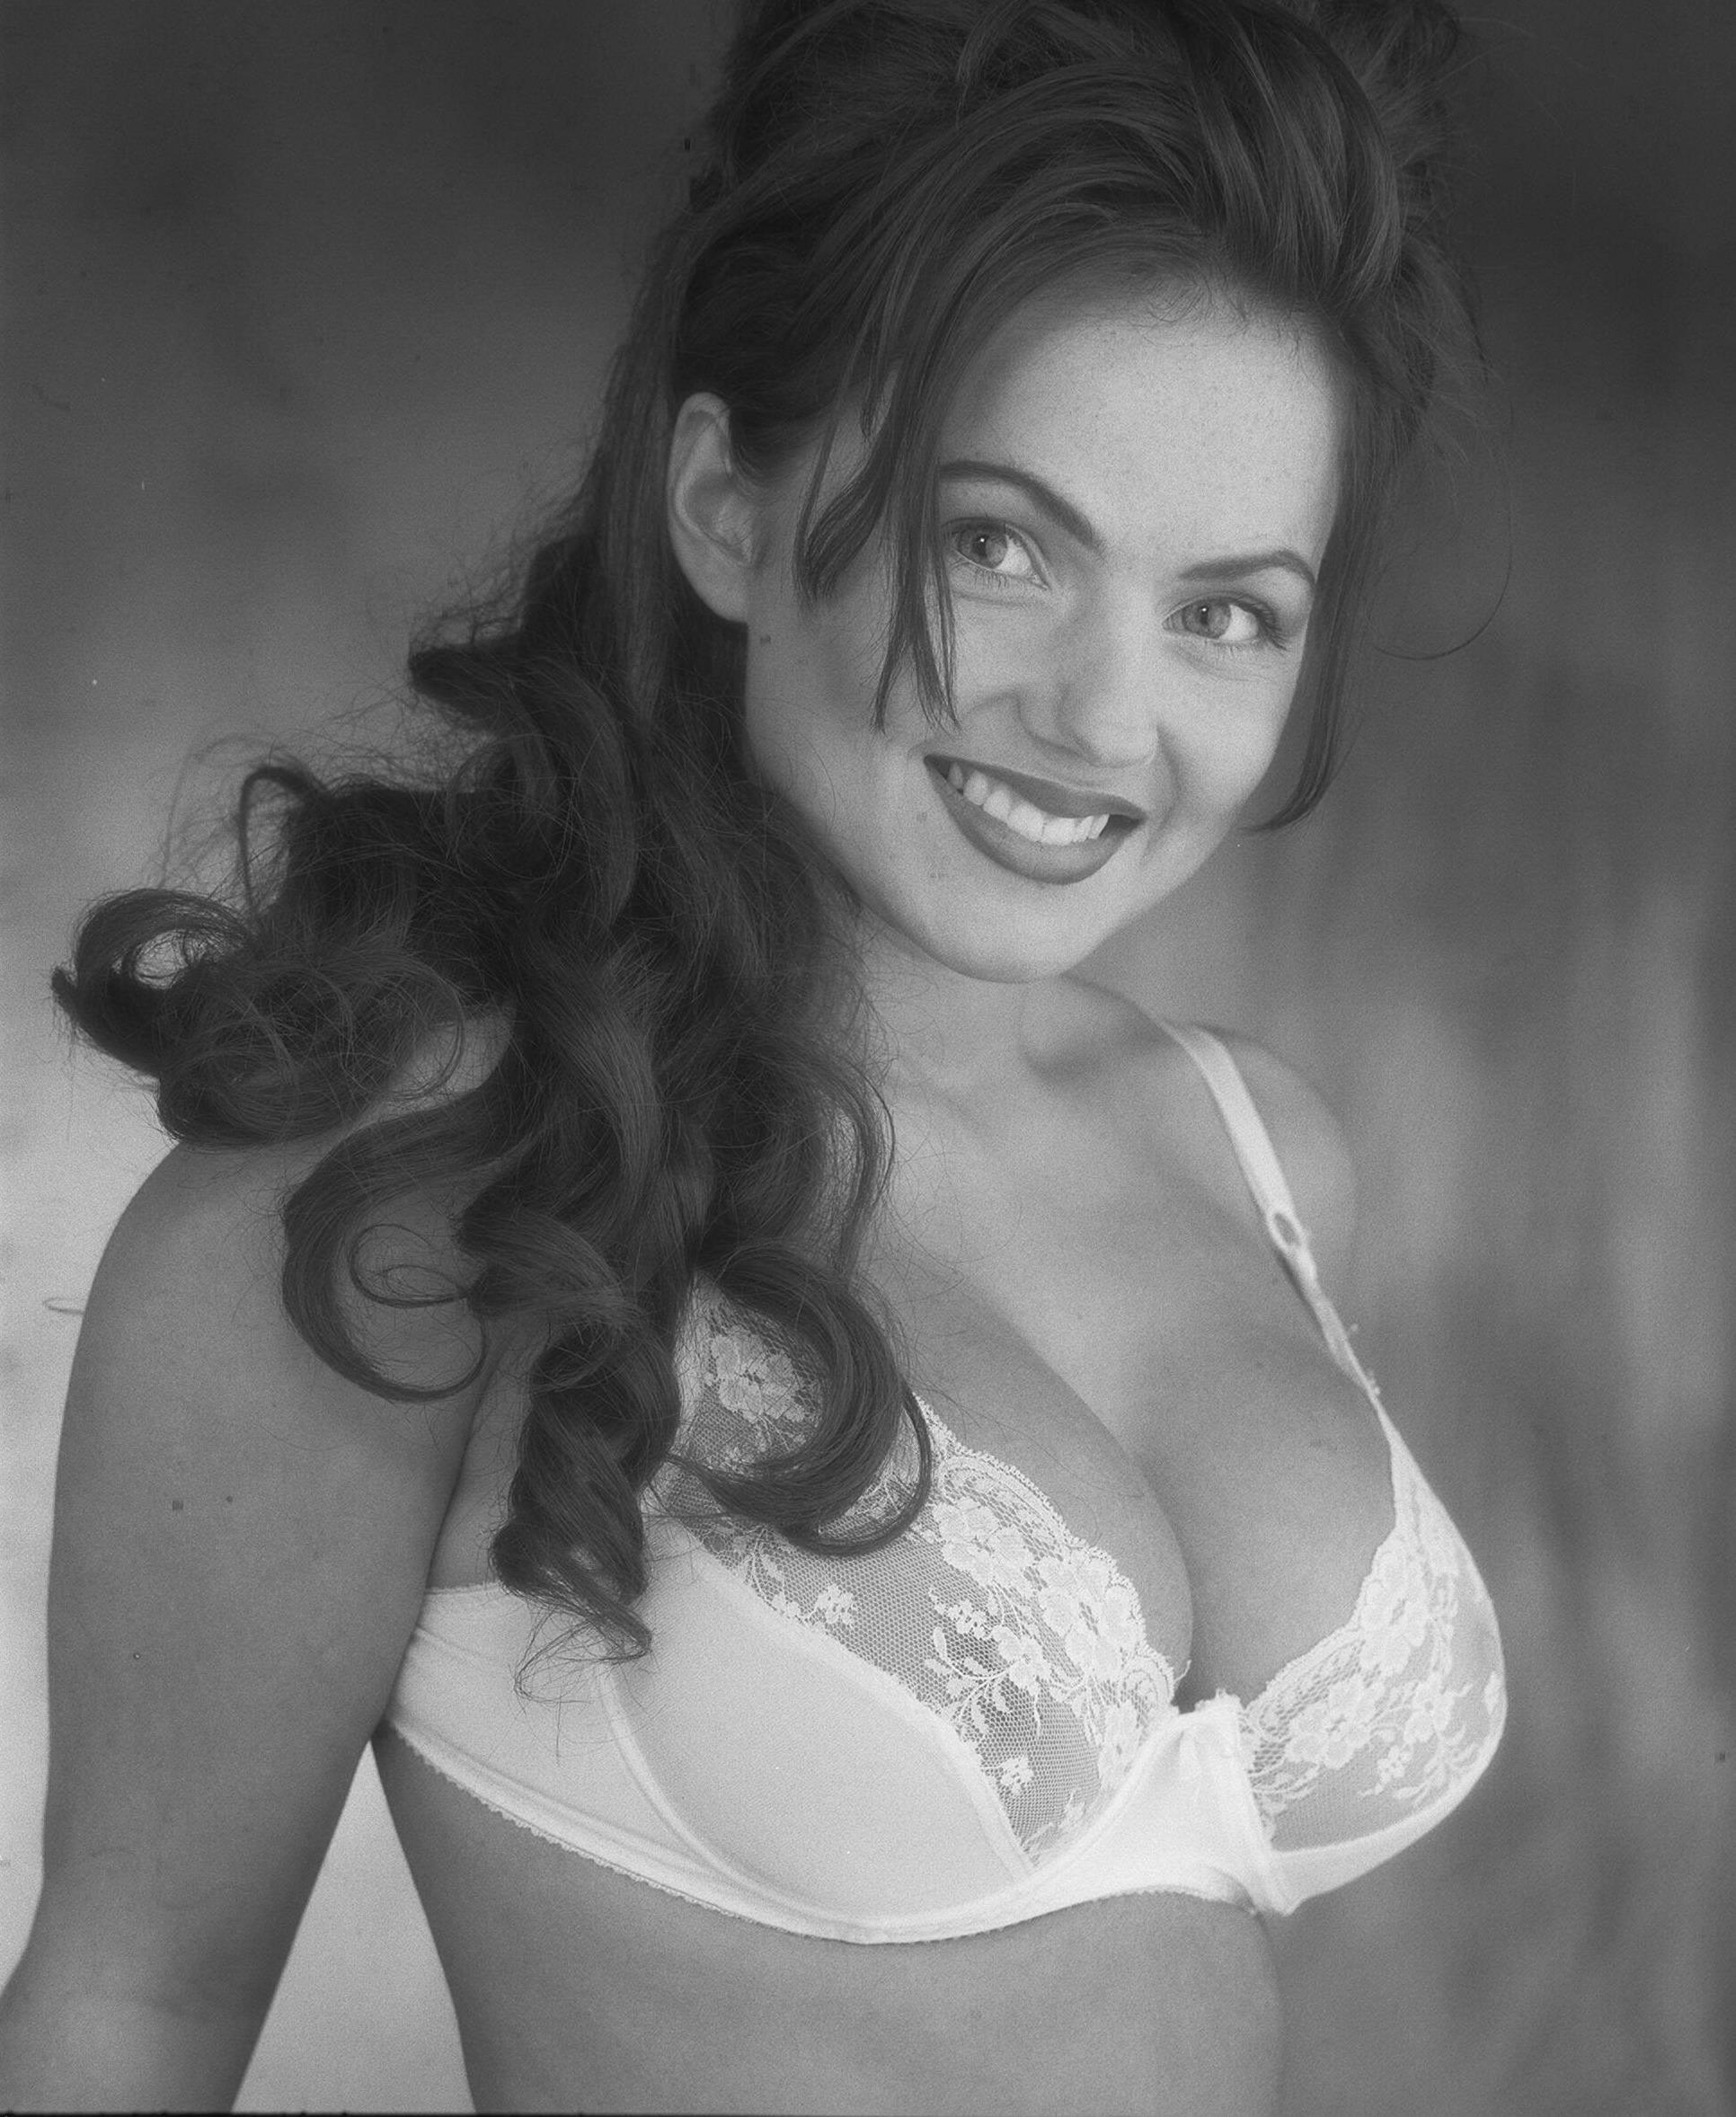 Geri Halliwell Nude Pics geri halliwell nude - page 17 pictures, naked, oops, topless